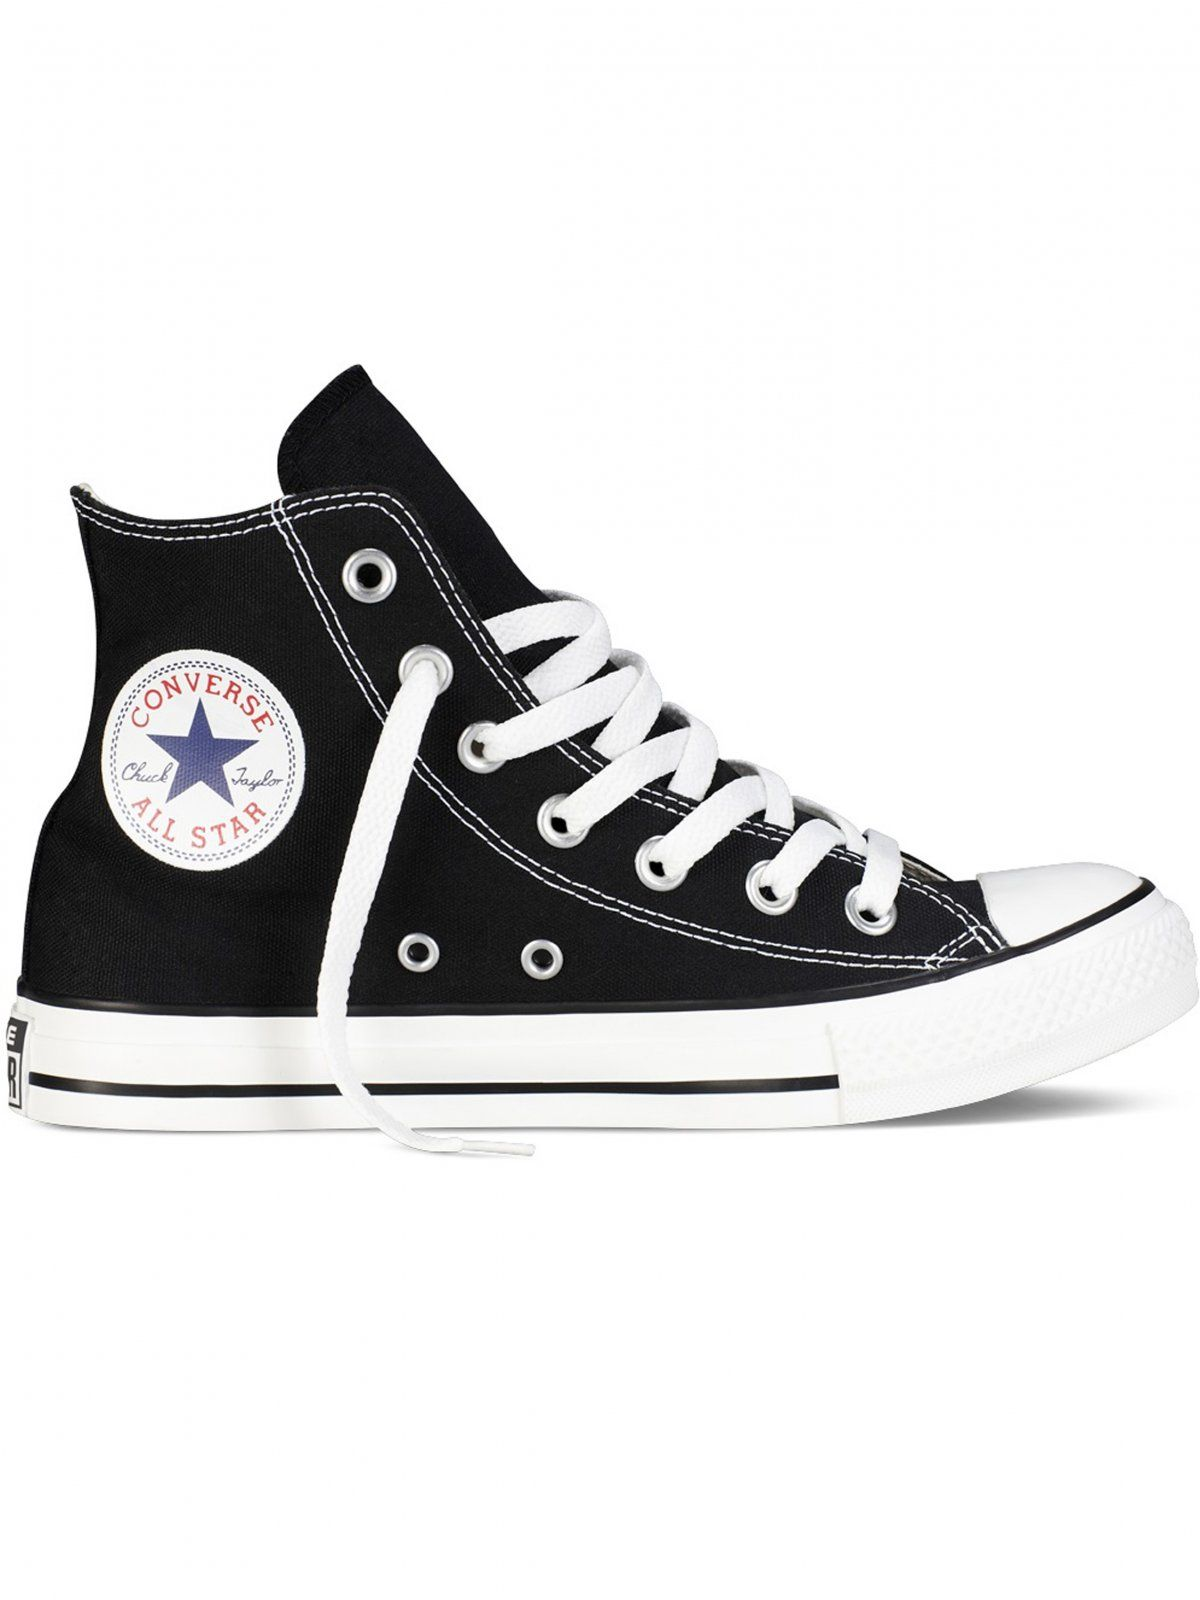 Converse All Star Unisex Chuck Taylor High Tops - Black/White